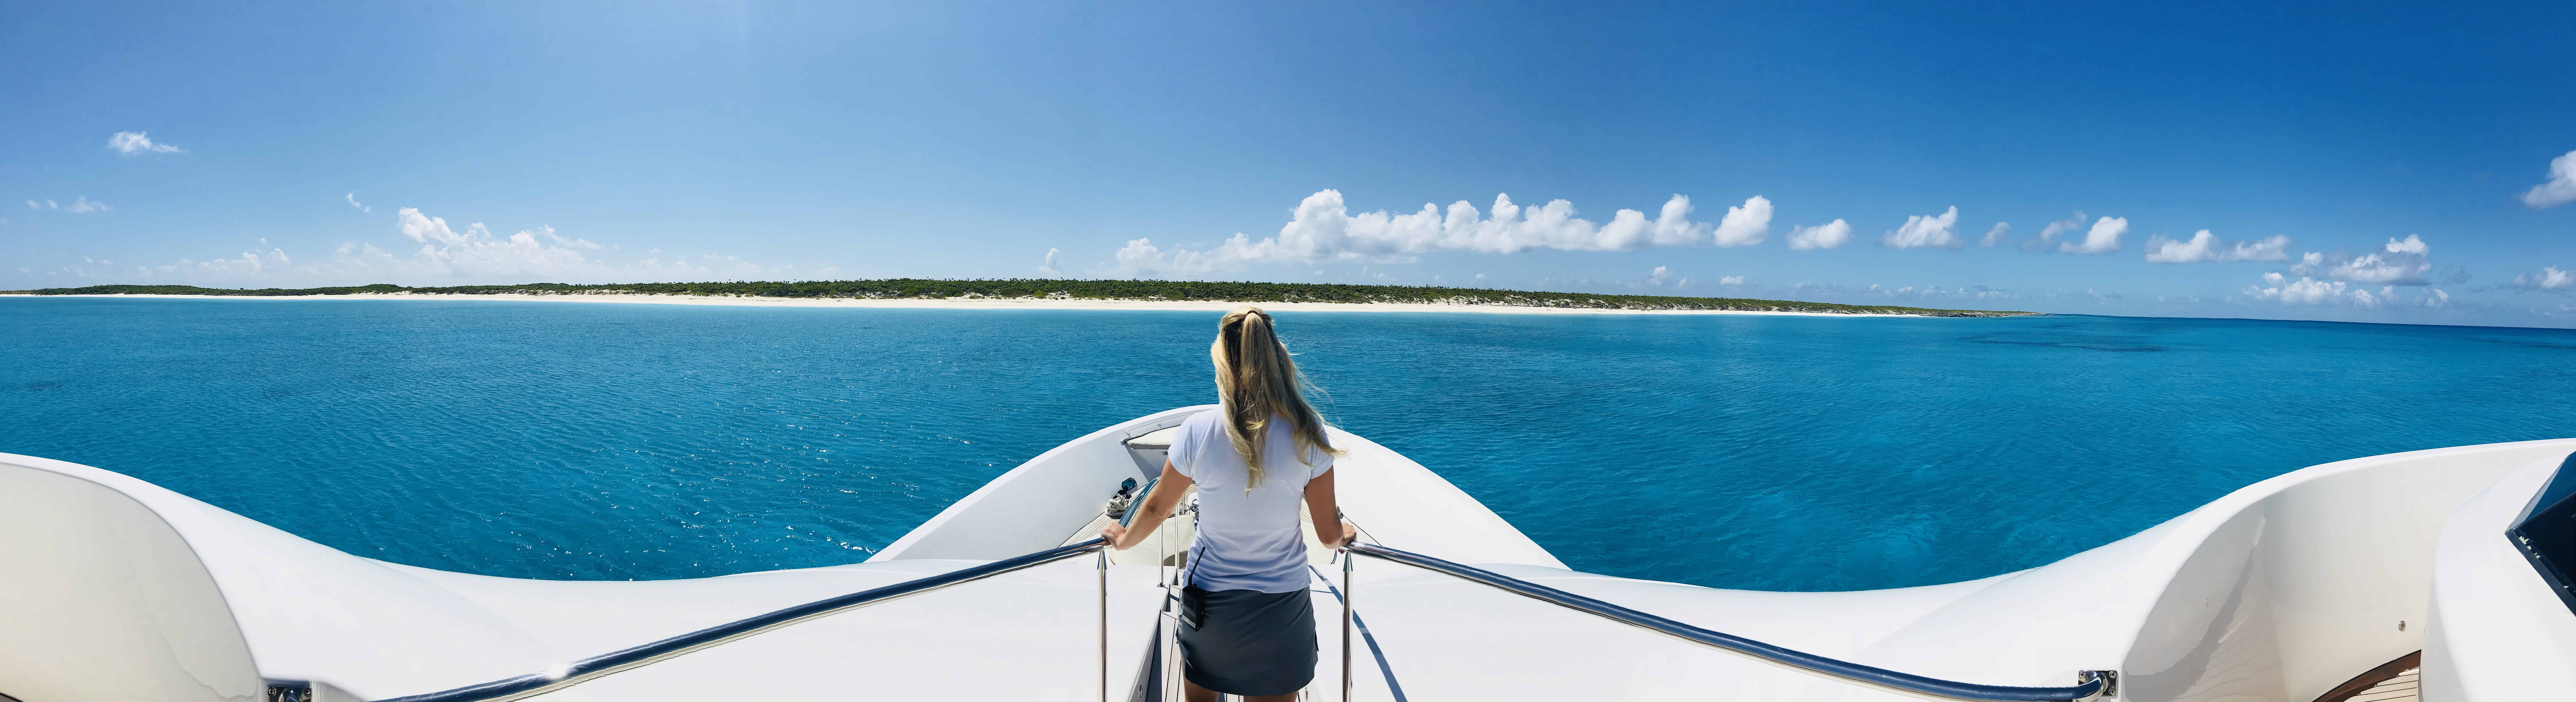 Zero To Travel Podcast How To Travel The World Working On A Yacht (Travel Job Series) w/ Heather Steele